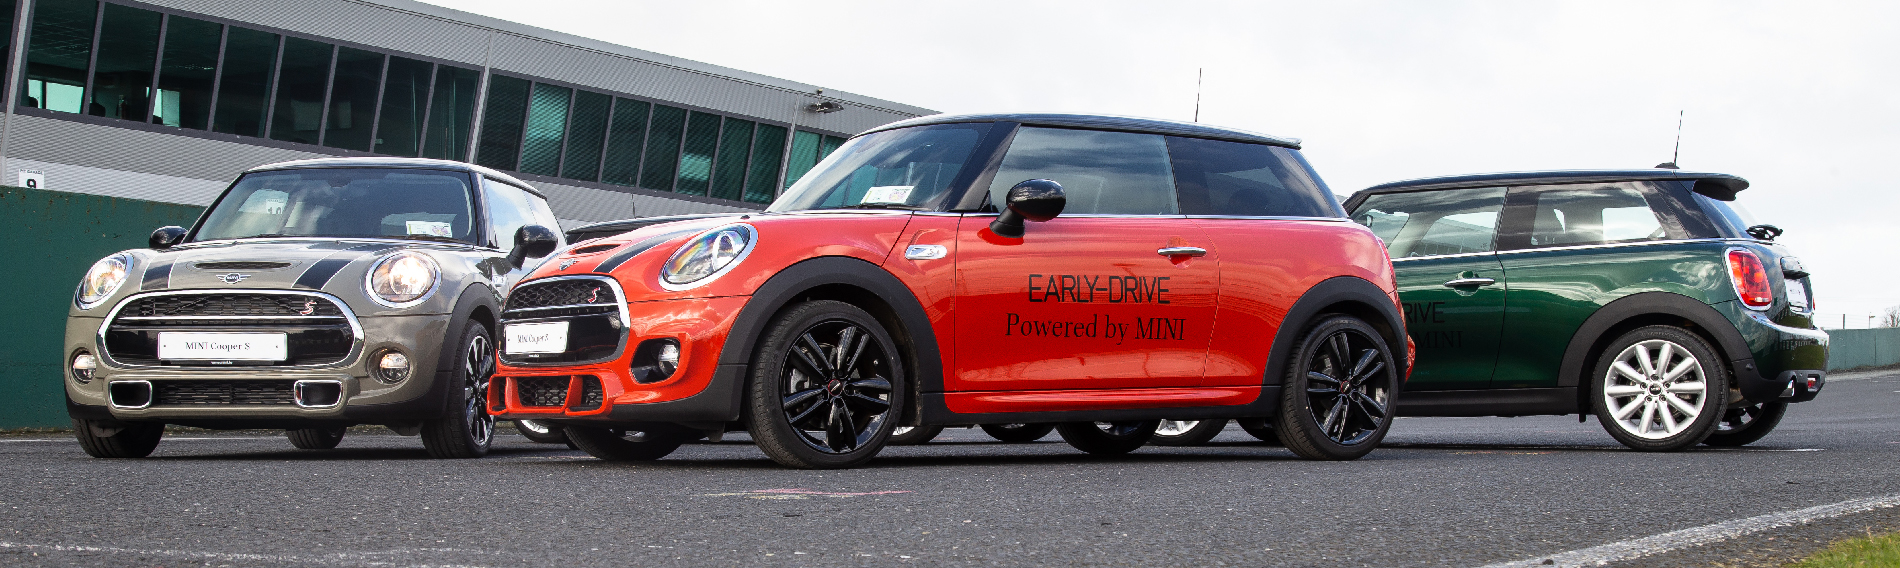 Early-Drive MINI